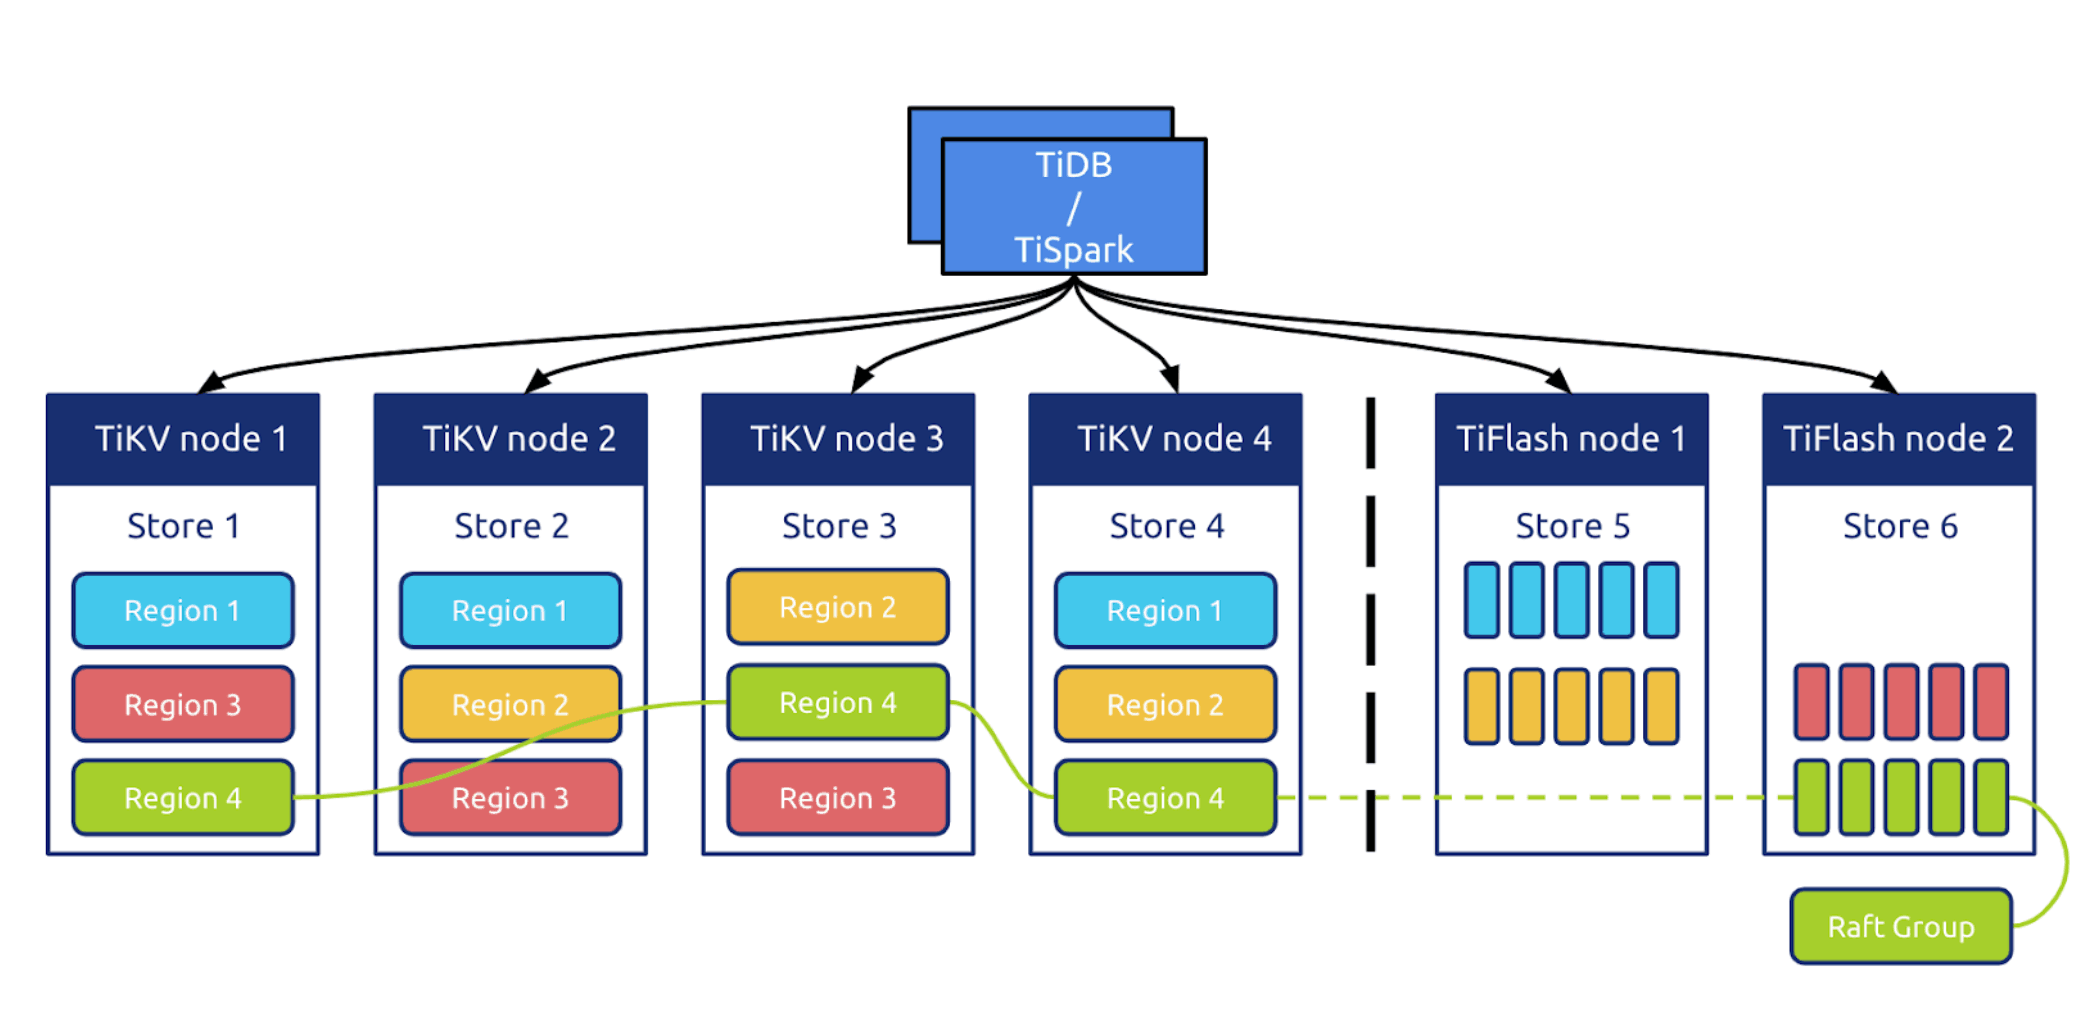 TiDB in the HTAP architecture with TiFlash